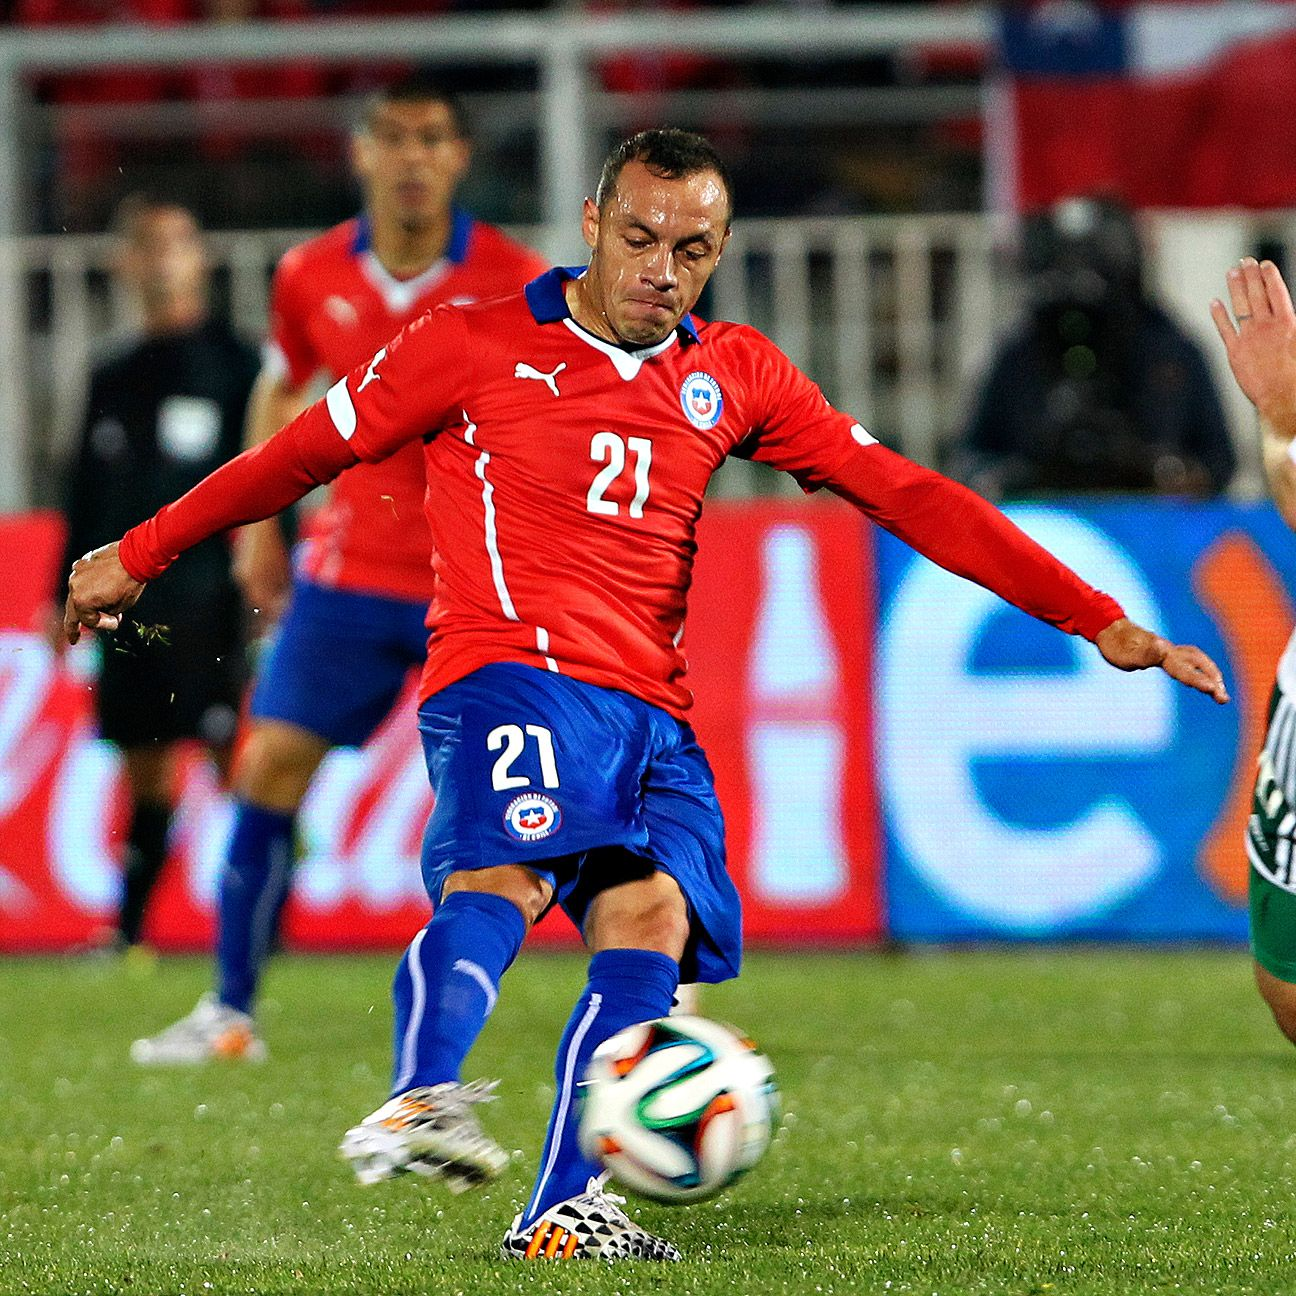 Marcelo Diaz has emerged as Chile's midfield maestro.